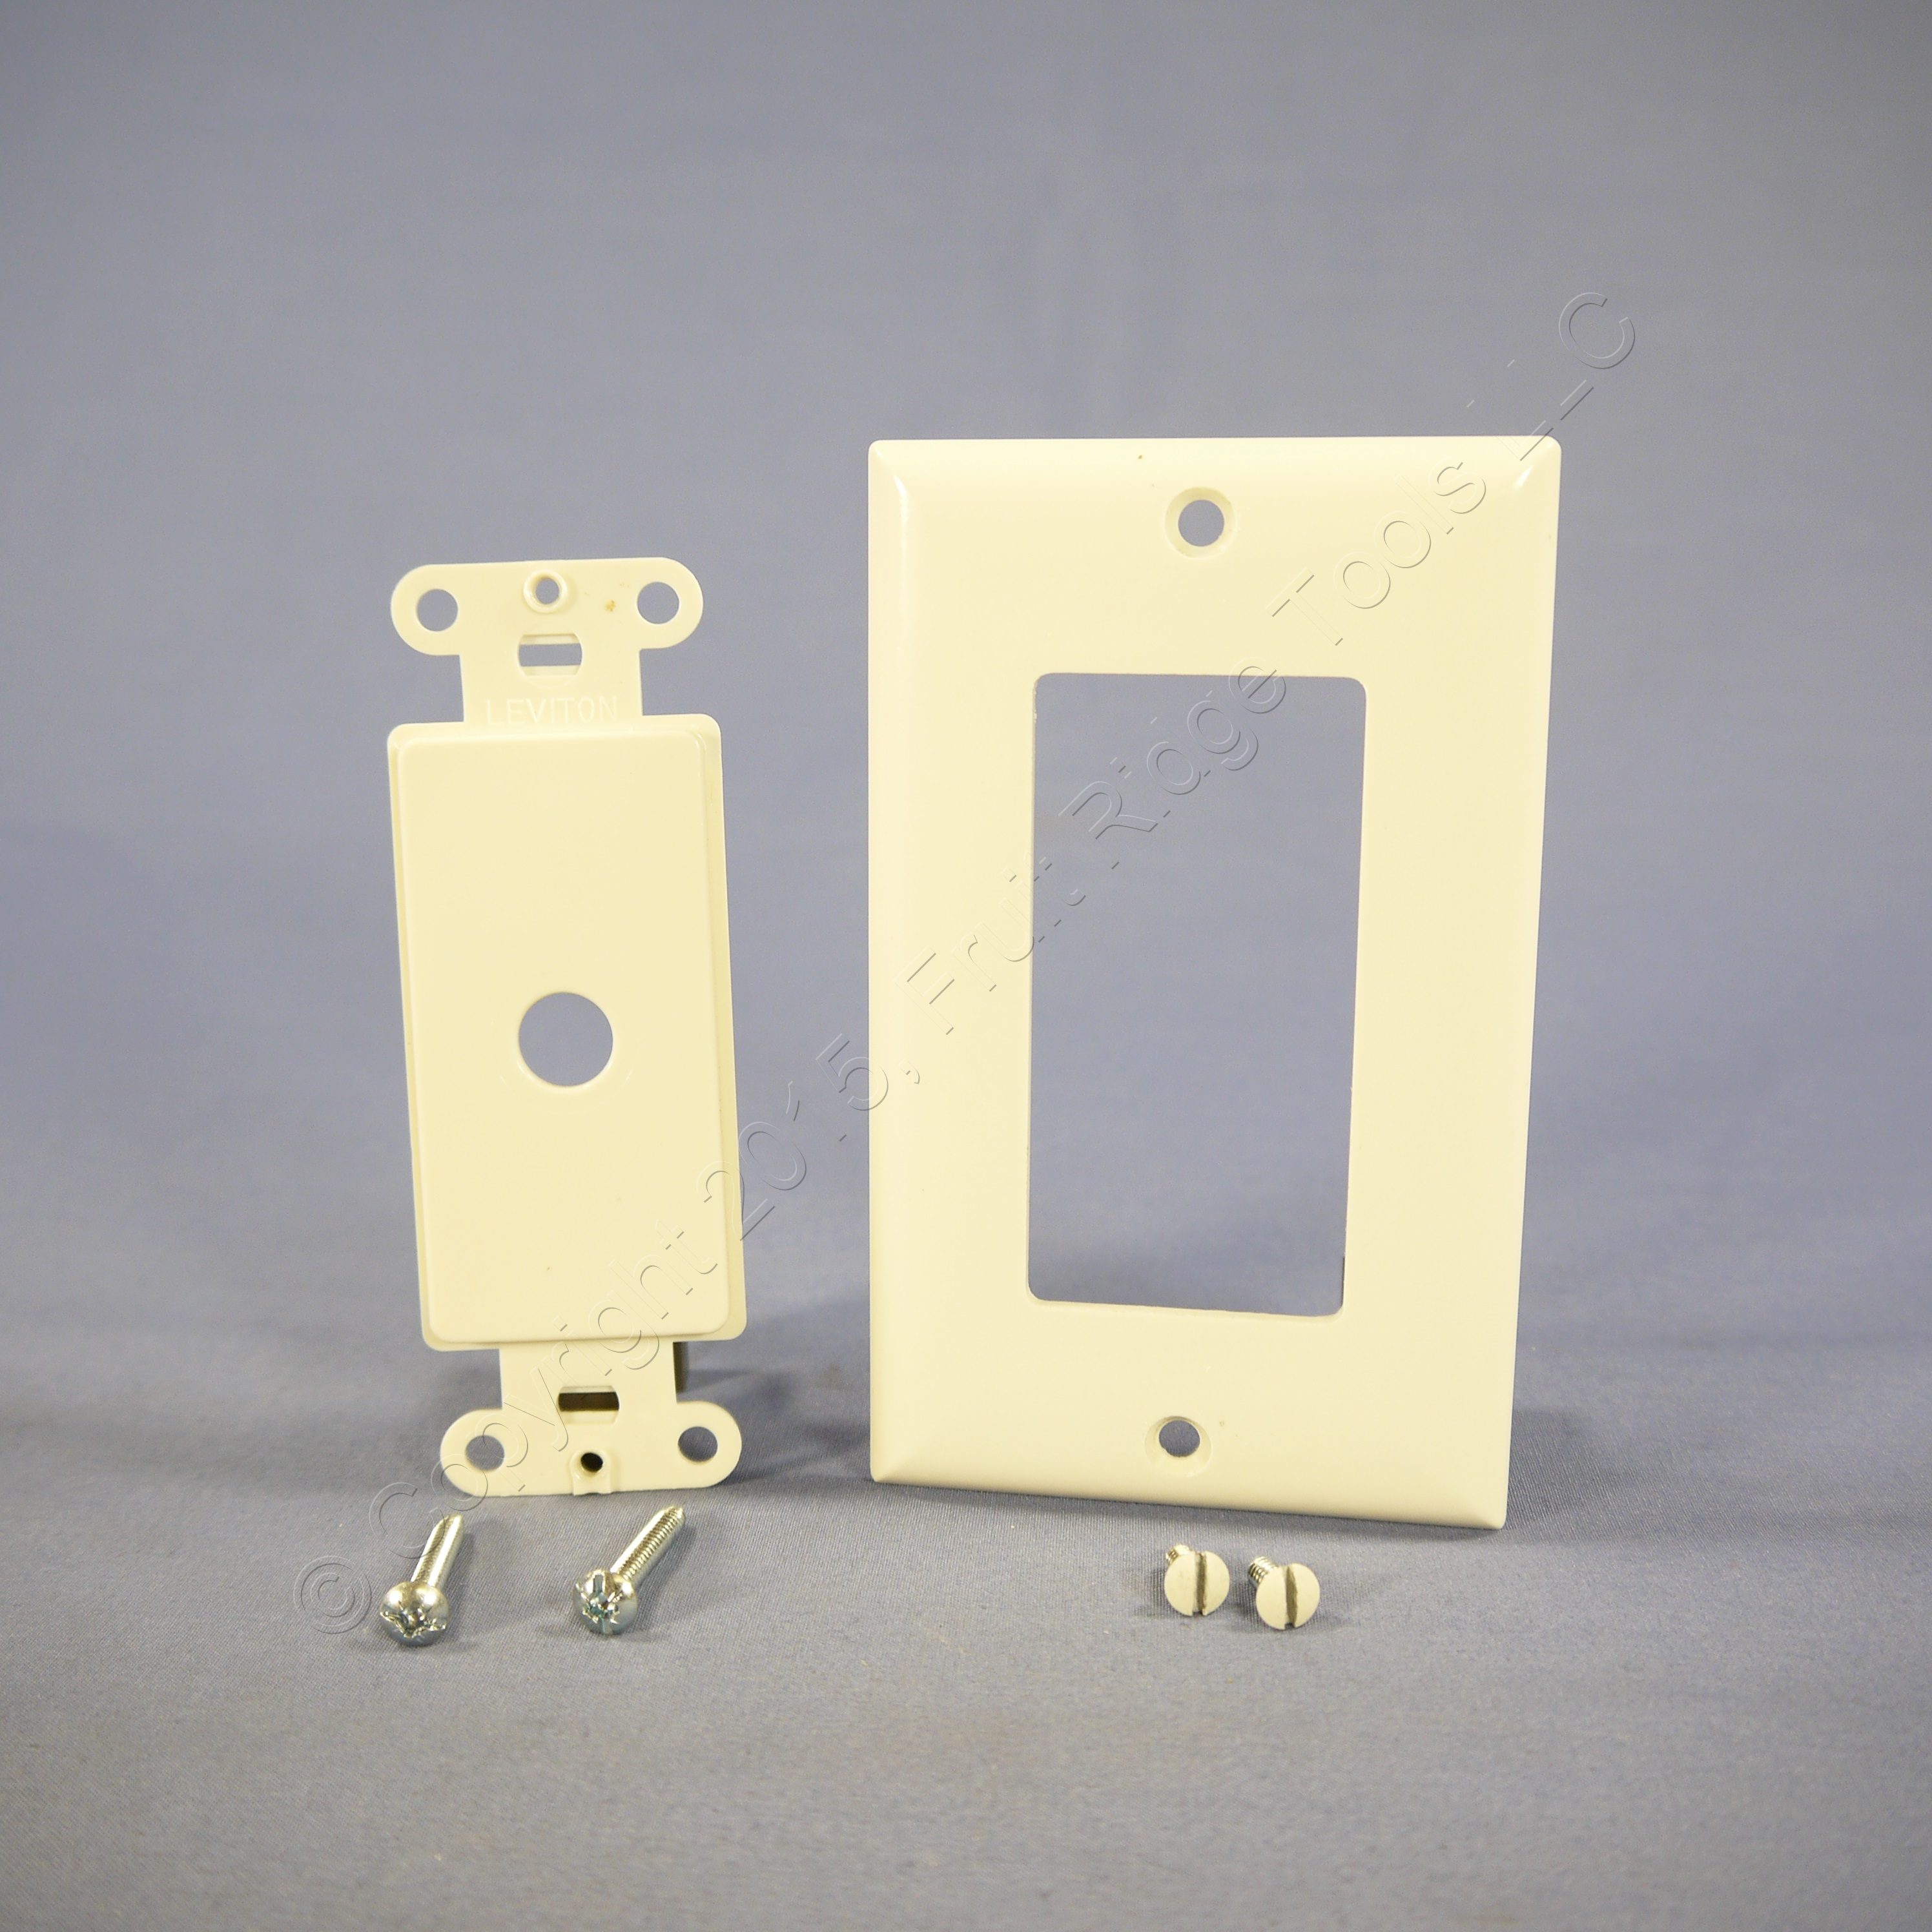 leviton light almond decora rotary dimmer switch cover wall plate 80400 t ebay. Black Bedroom Furniture Sets. Home Design Ideas